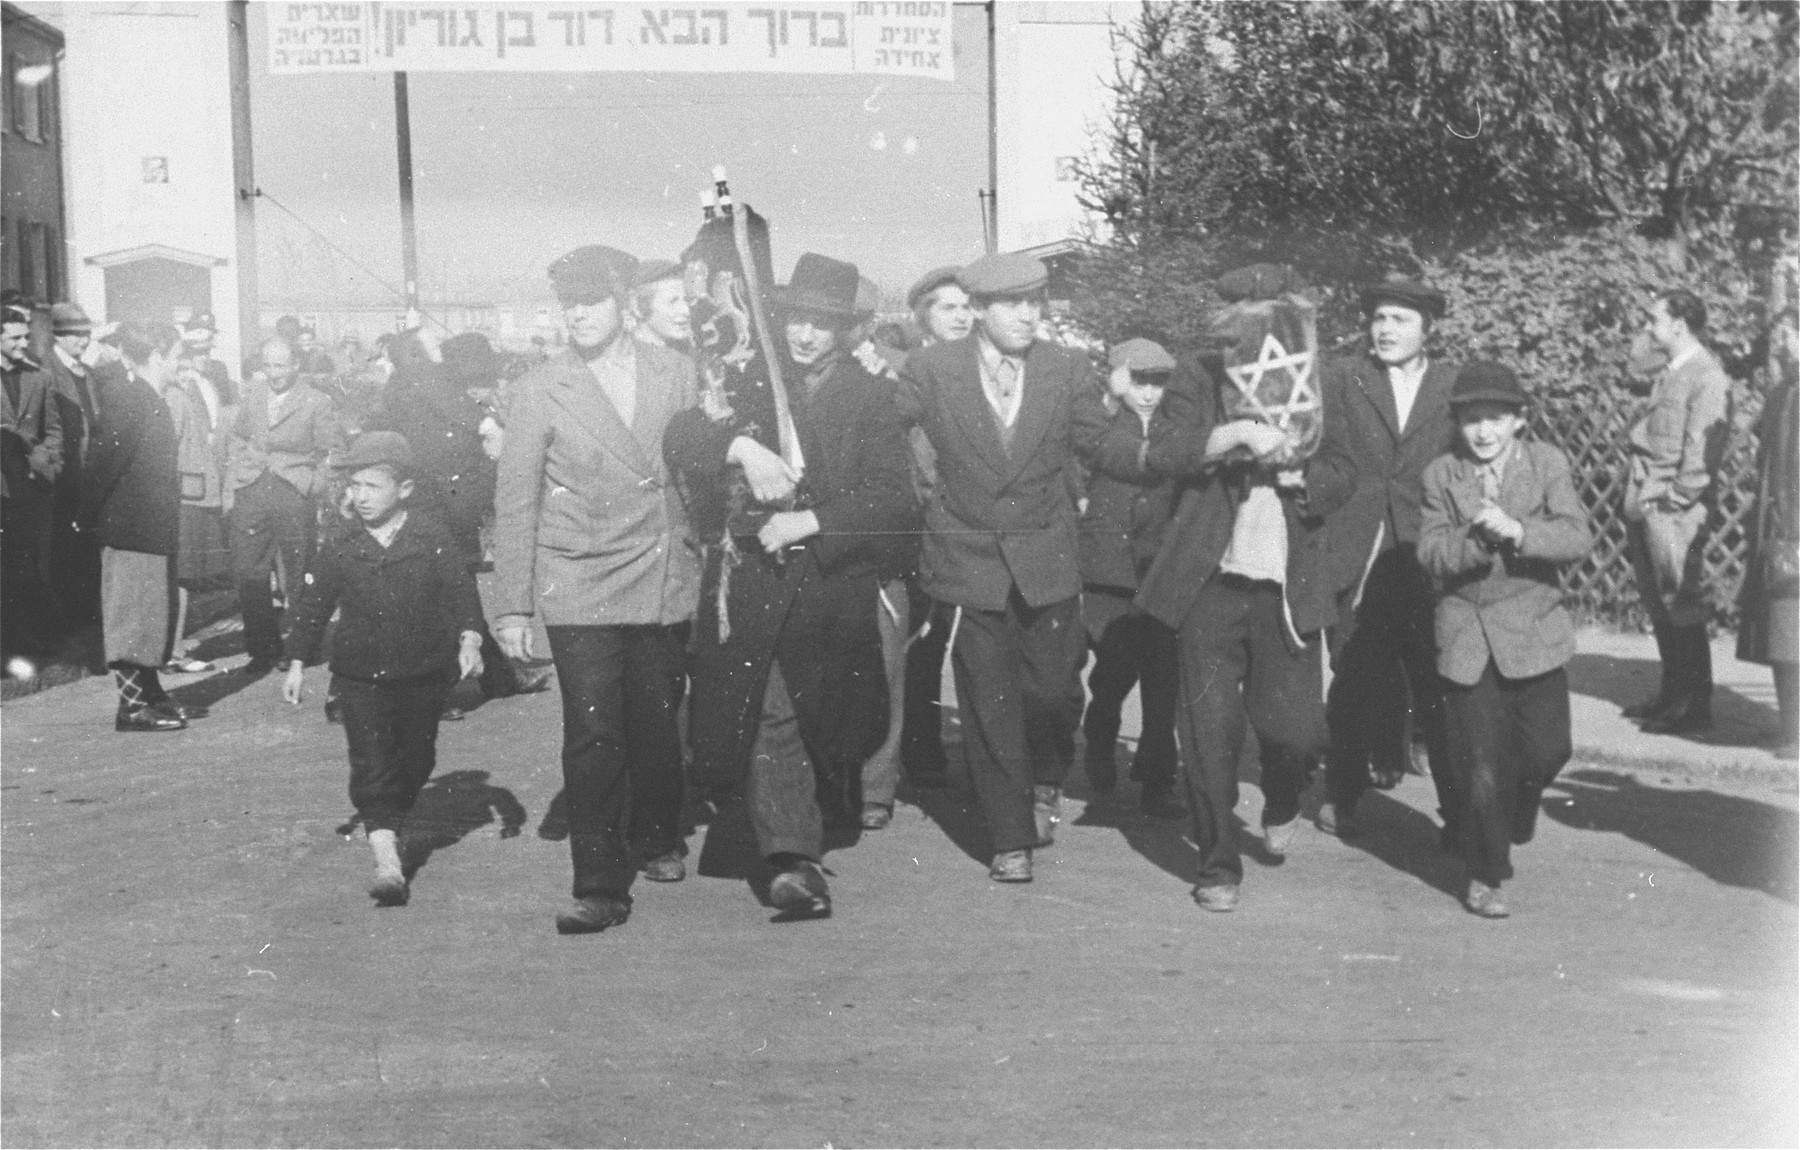 Yeshiva students march with Torah scrolls along a street in the Zeilsheim displaced persons camp, on their way to greet David Ben-Gurion during his official visit to the camp.